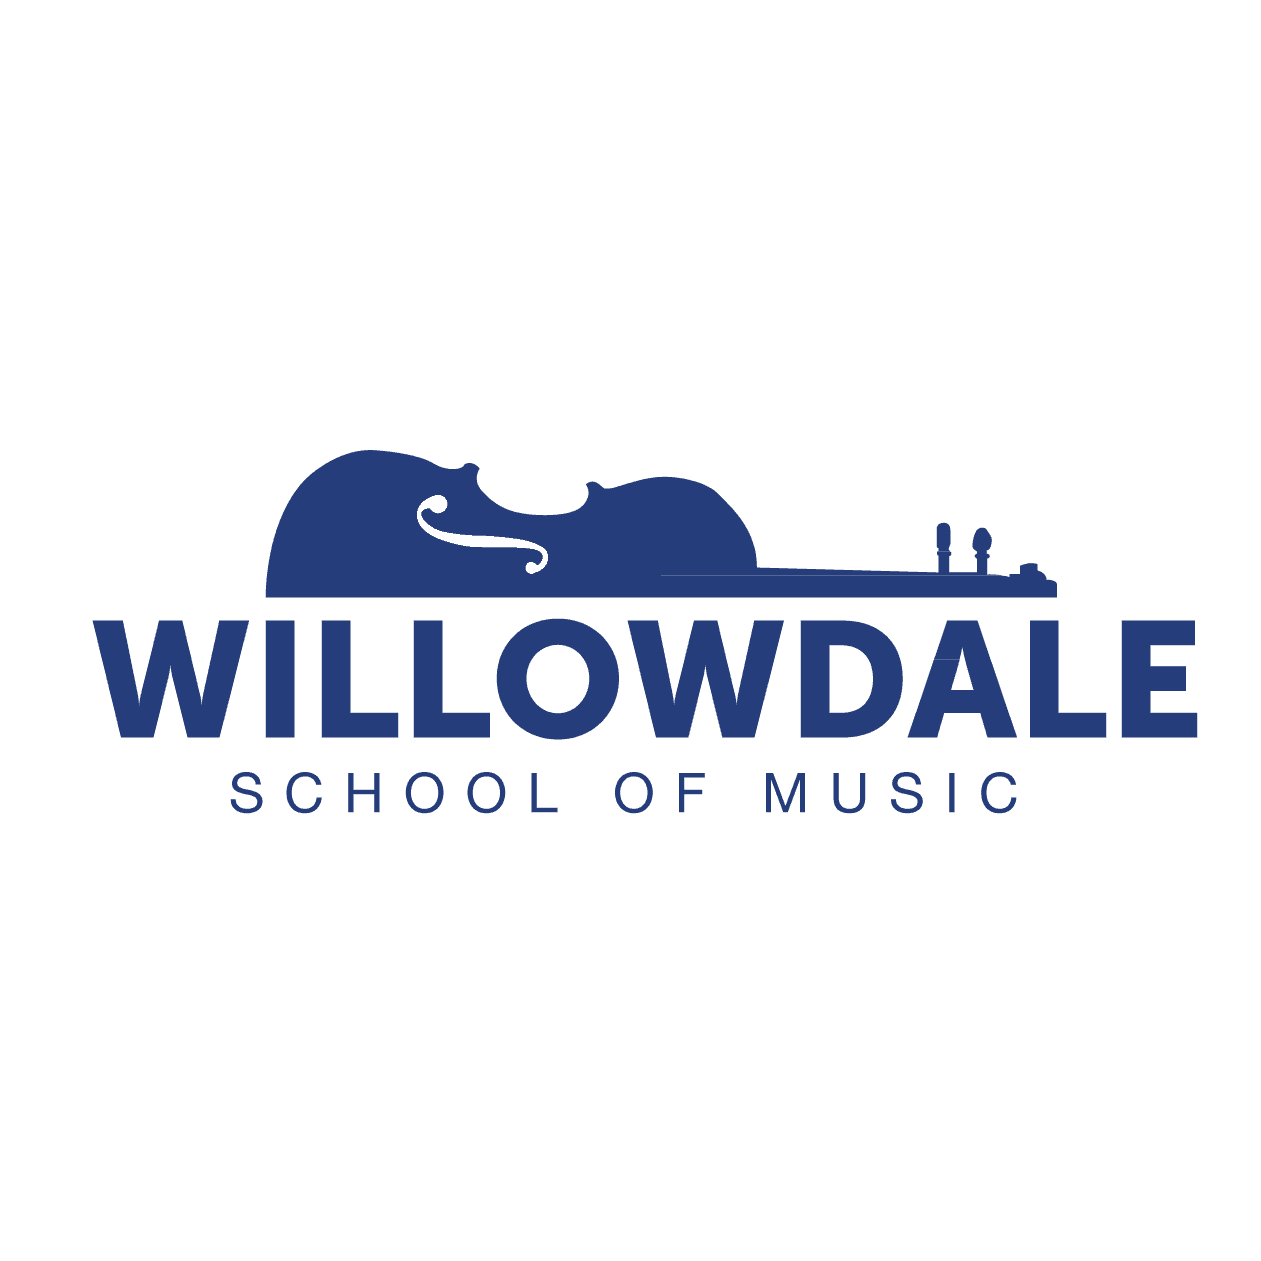 Willowdale School of Music